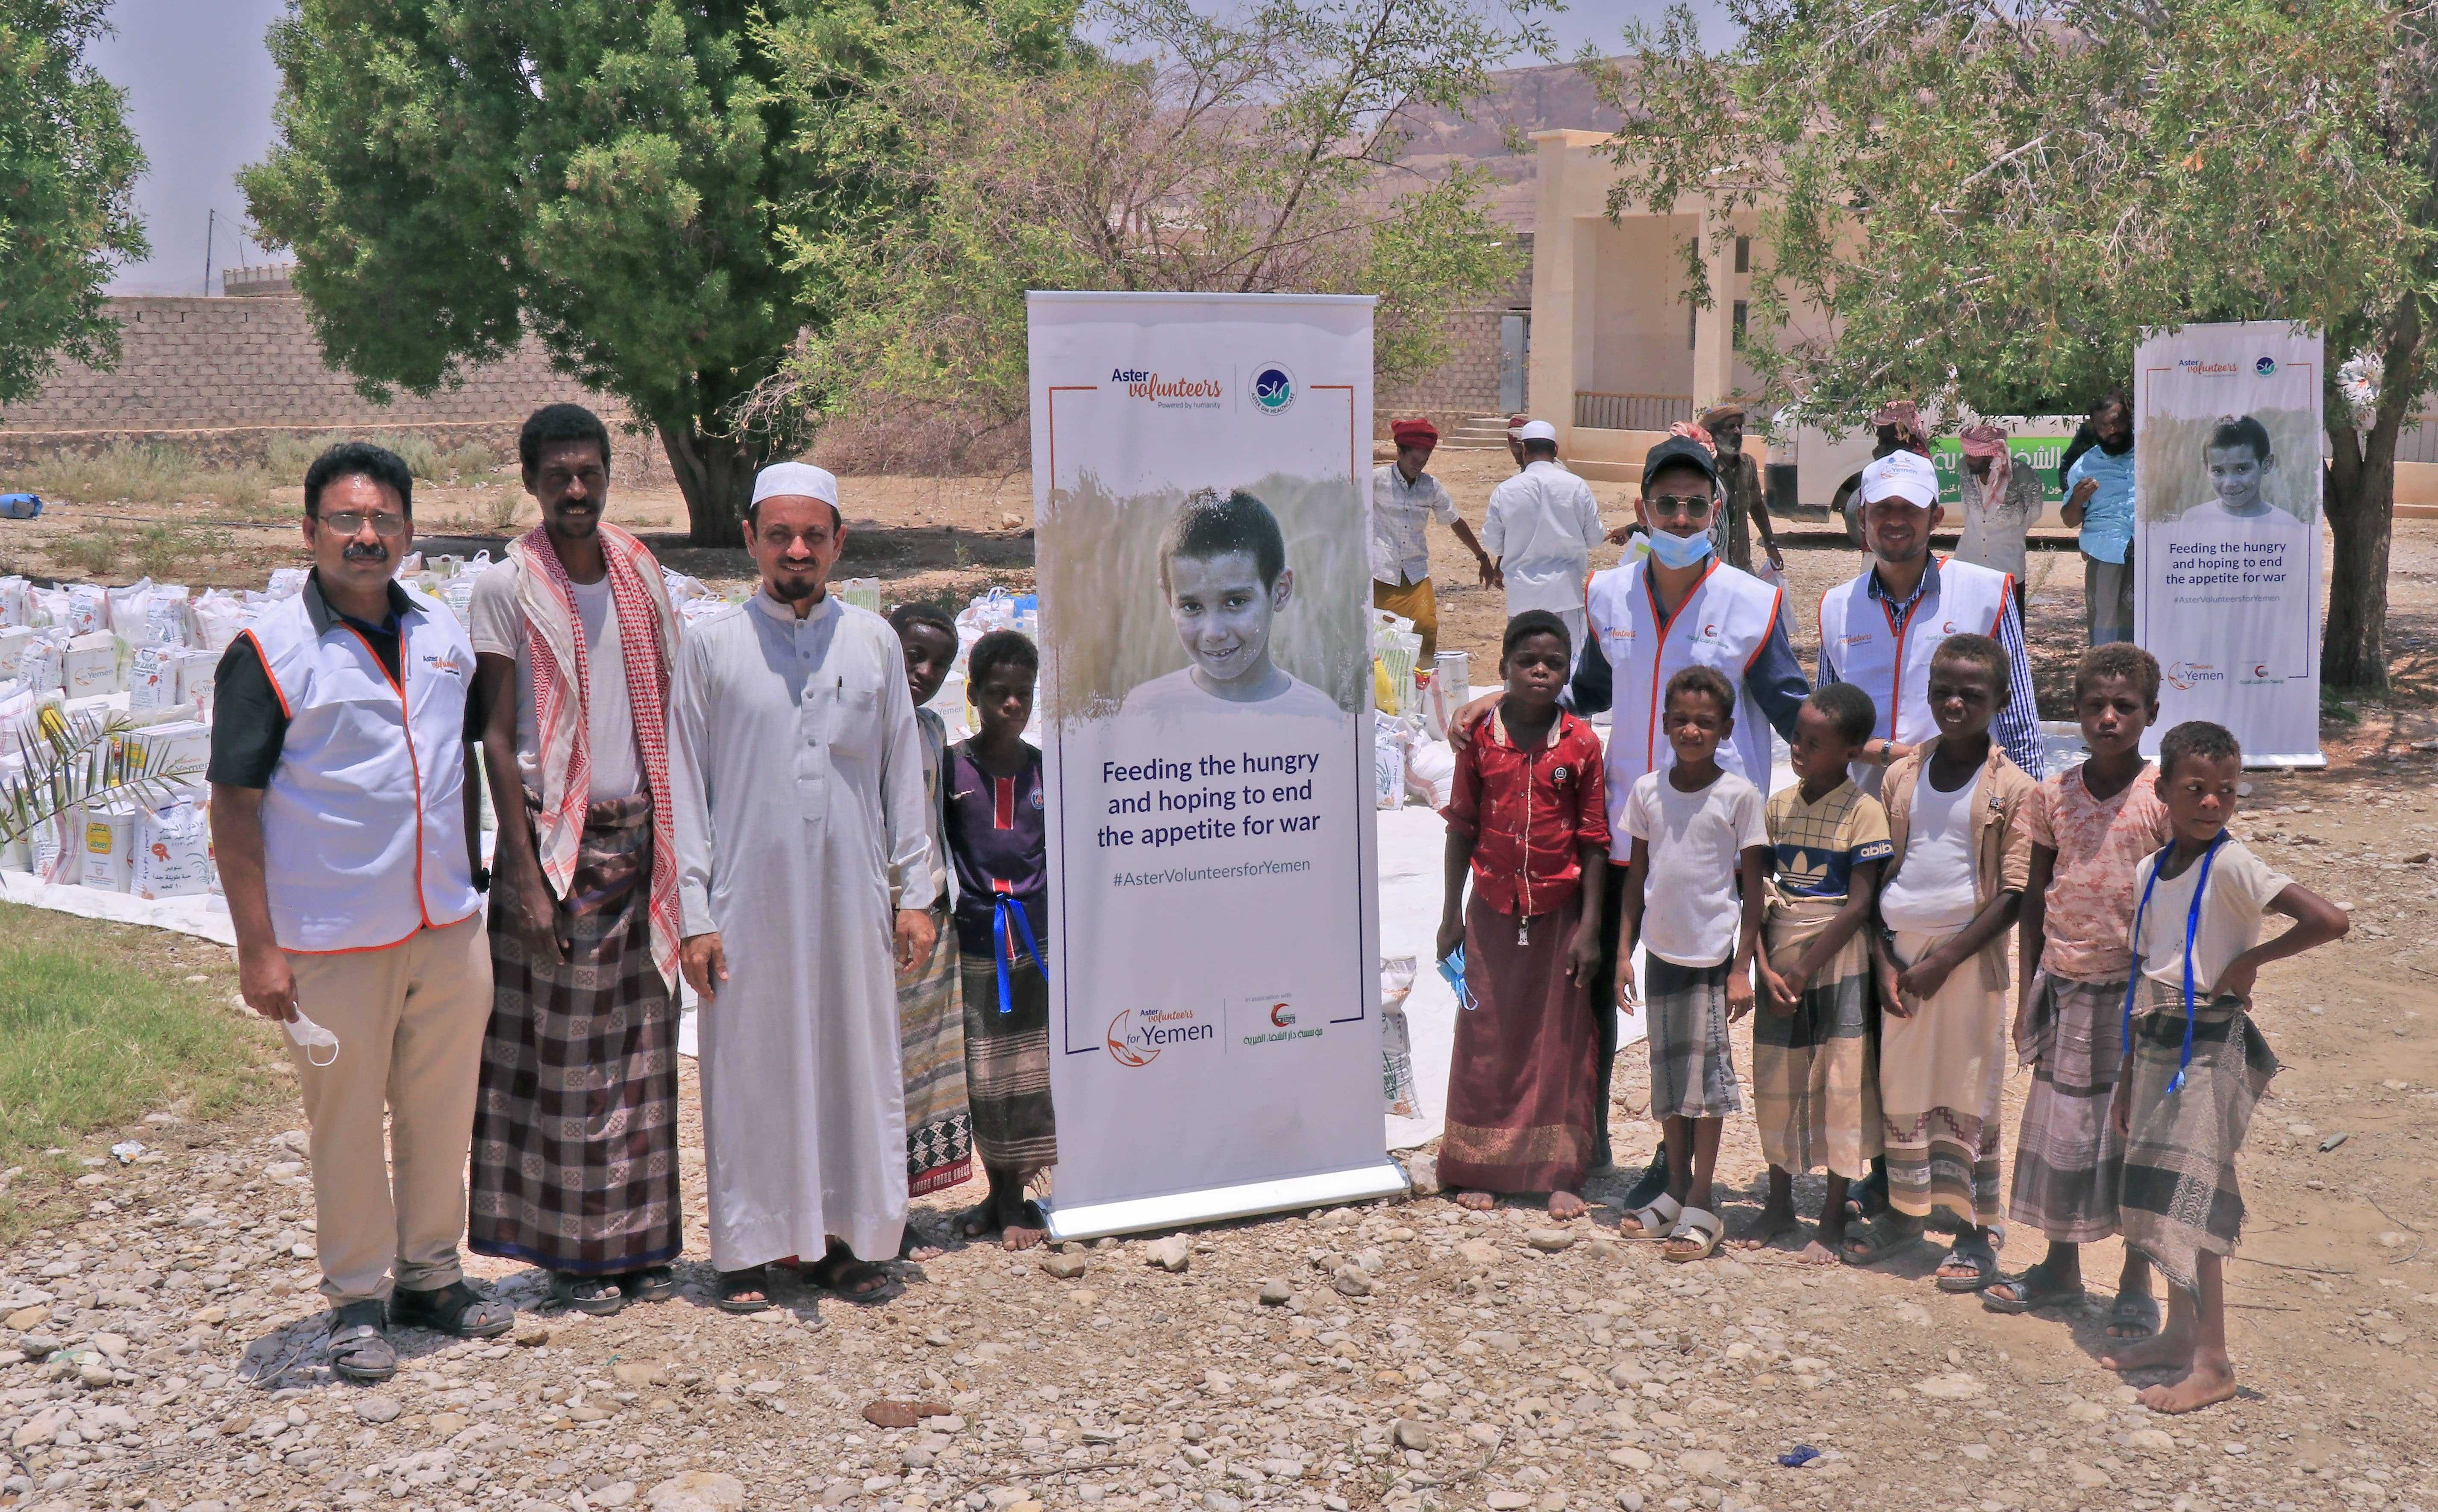 Mr Jaleel PA Head CSR at Aster DM Healthcare extreme left along with external volunteers donated 75 tonnes of food to underprivileged families in Yemen